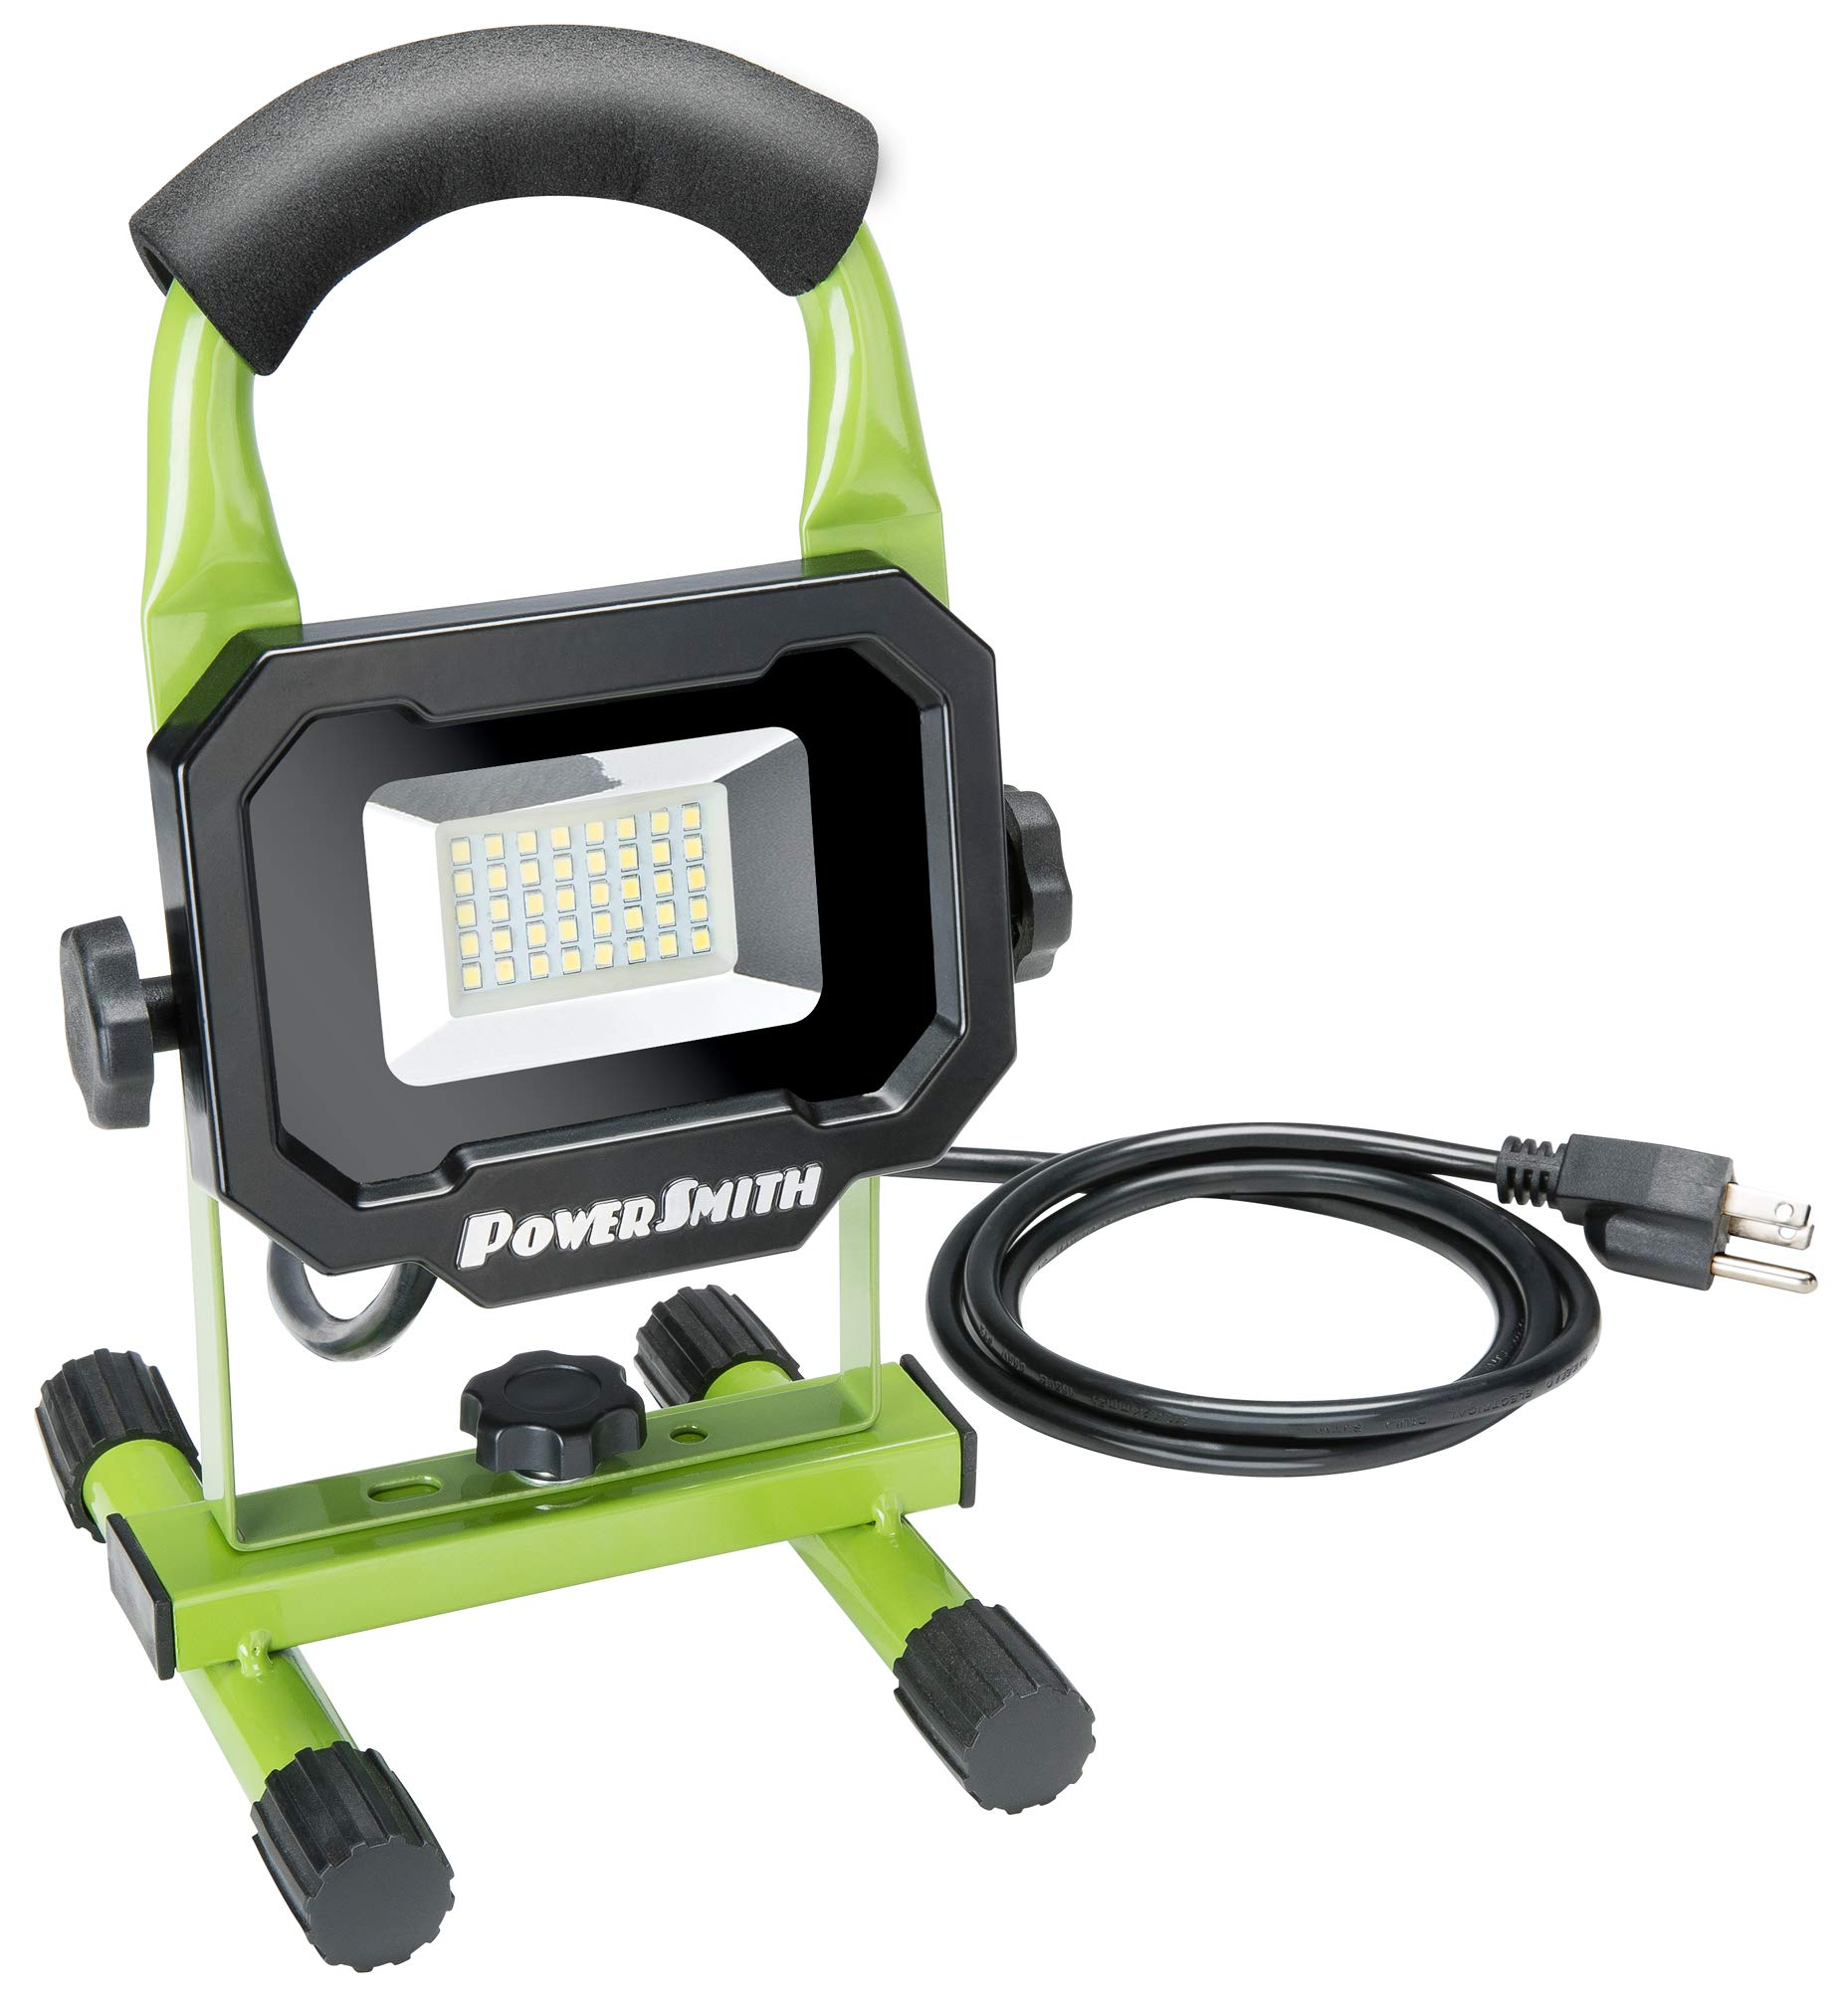 PowerSmith PWL1118BS 1800 lm LED Portable Work Light